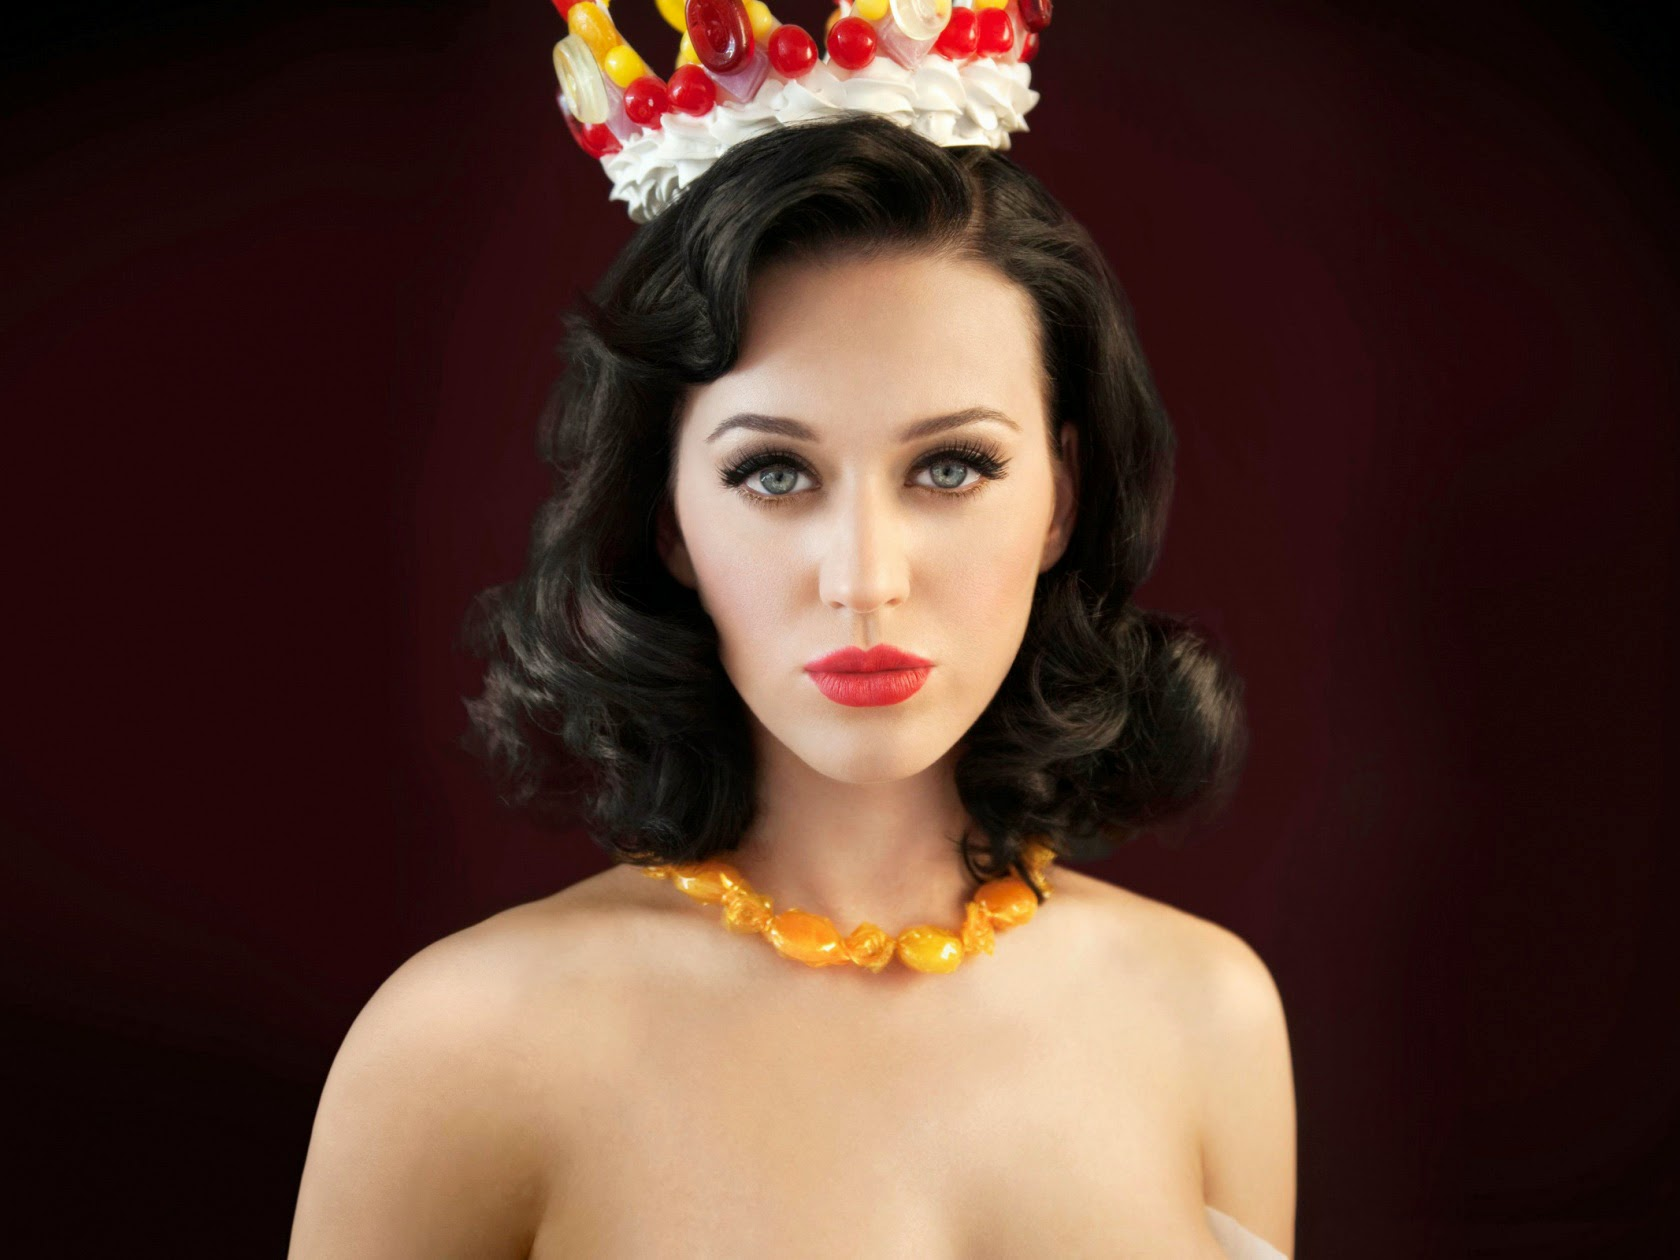 Papel de Parede Celebridade Katy Perry para computador pc hd Celebrity wallpaper image free